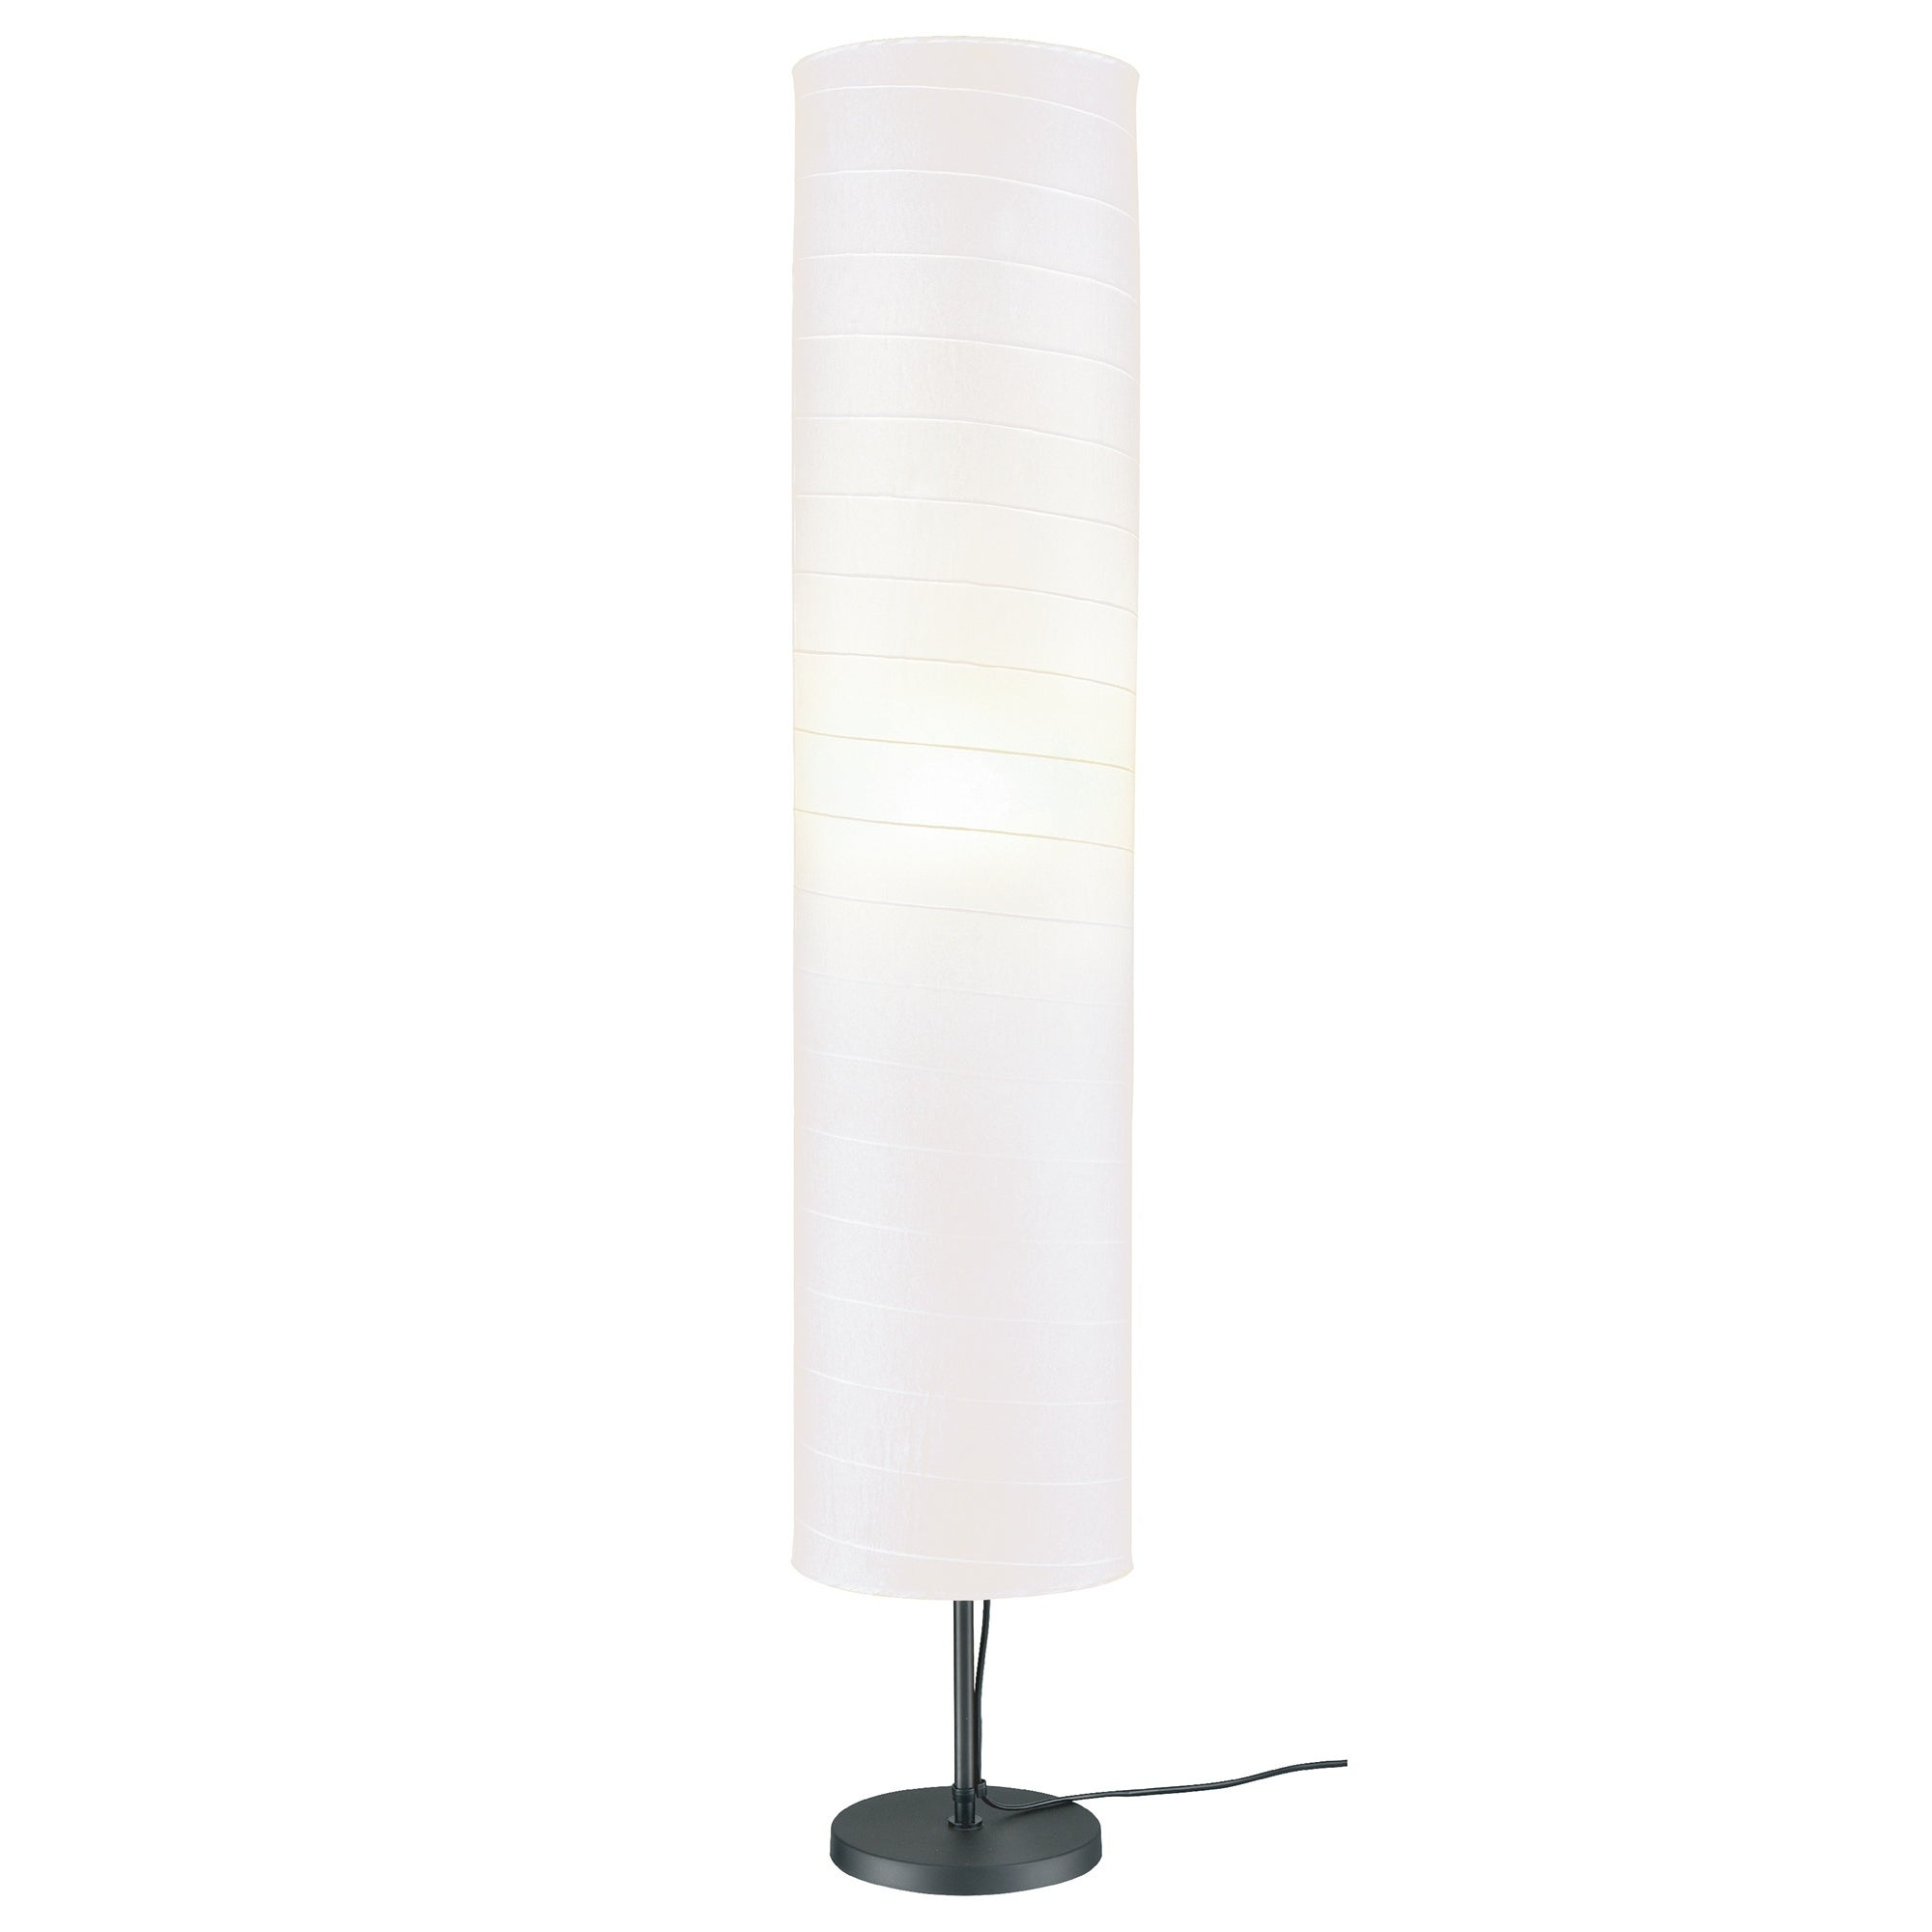 Maypex 46 Inches Paper Shade Floor Lamp